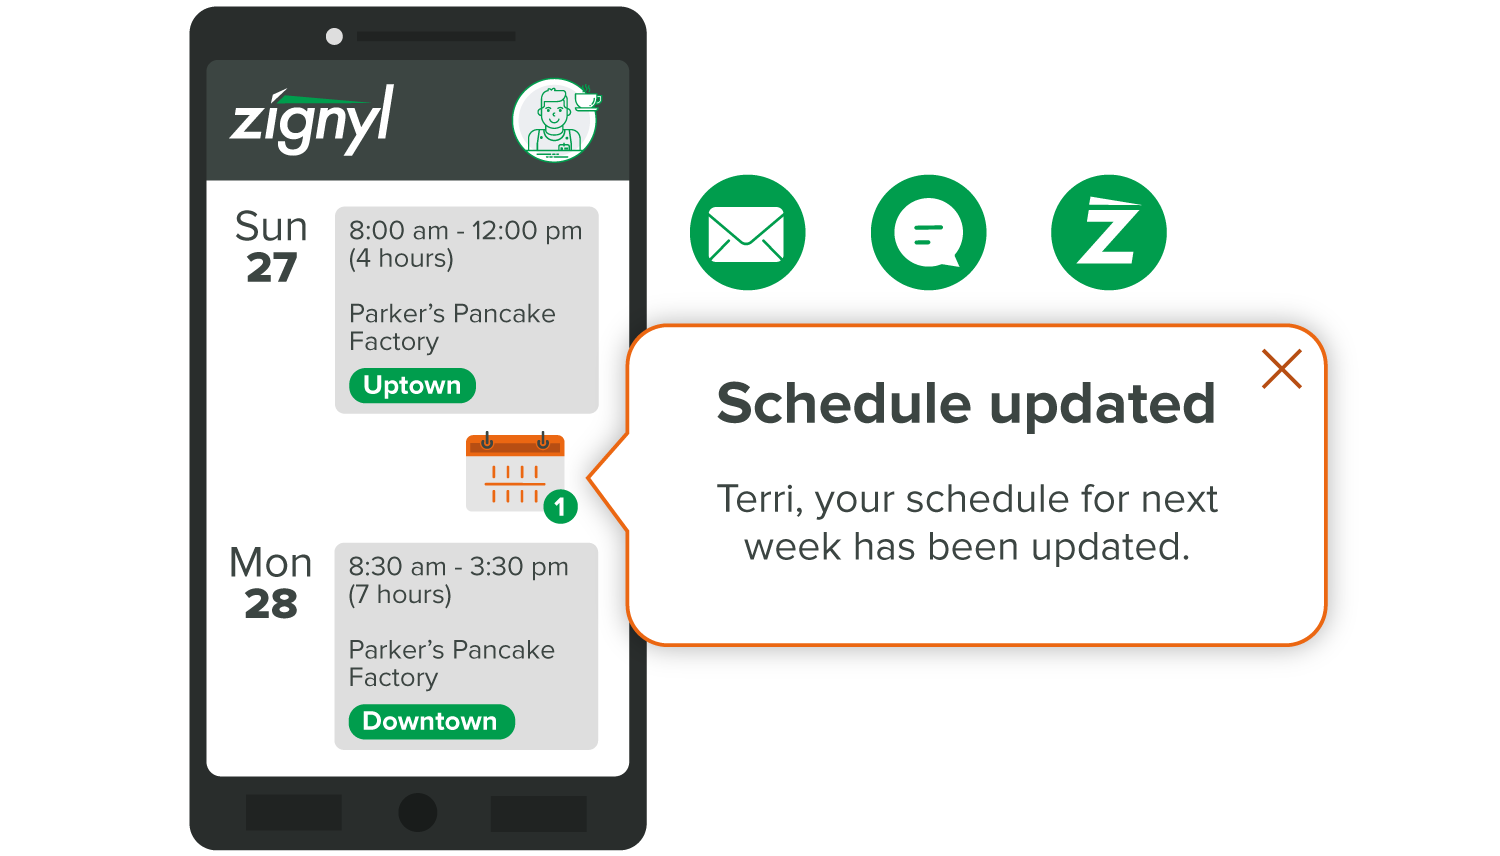 zignyl-Scheduling-Notification-Big.png